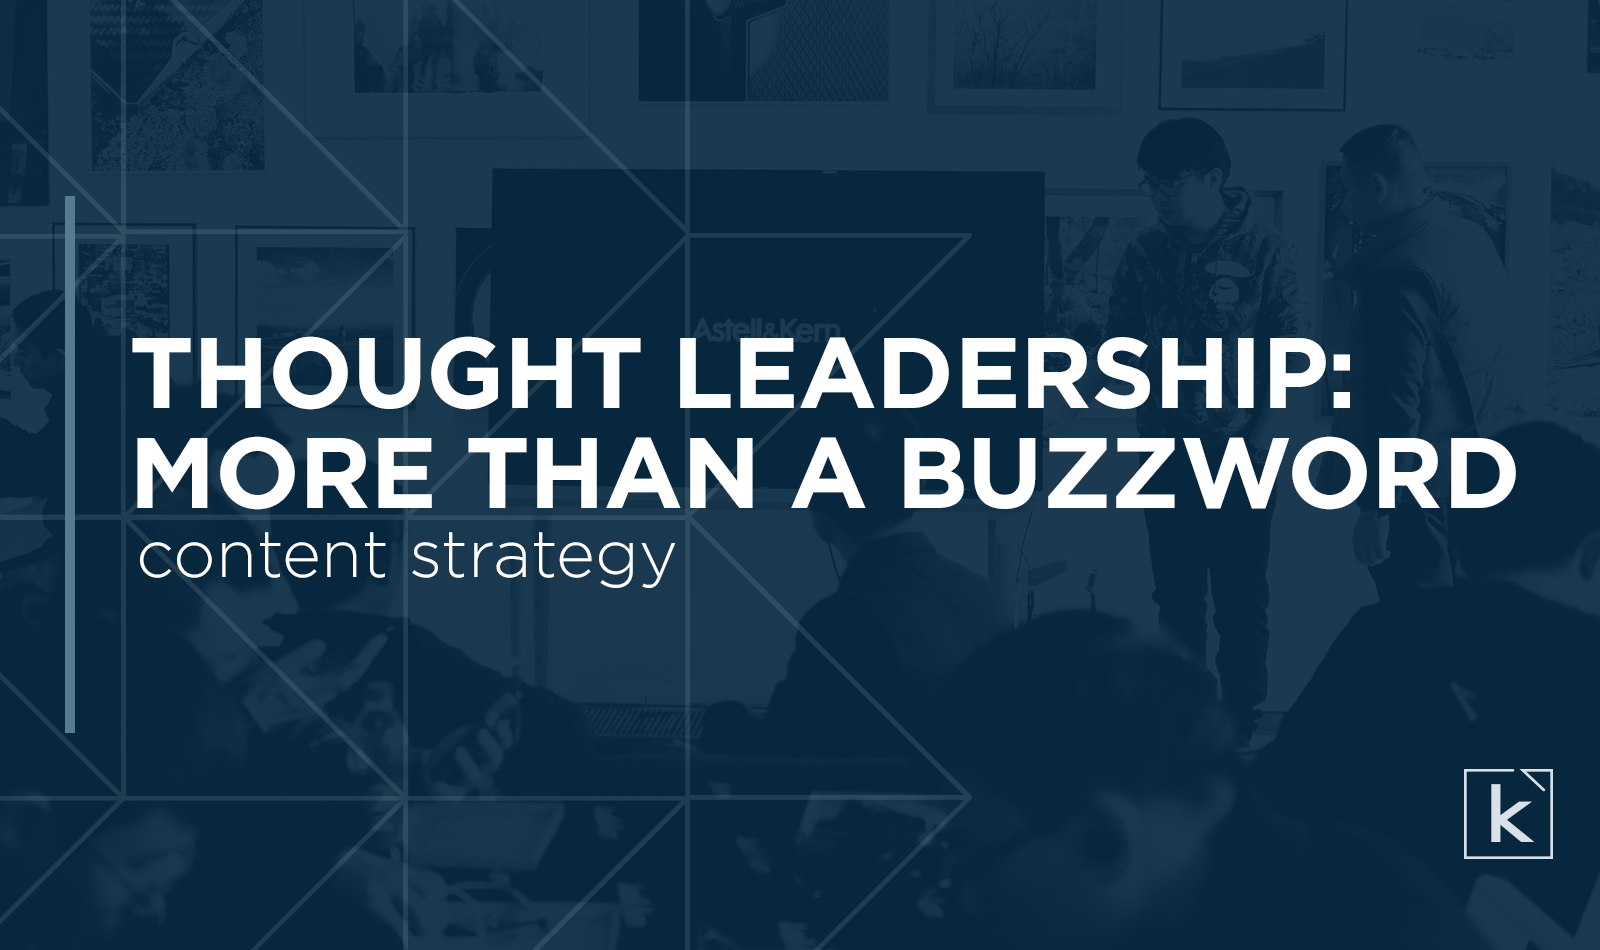 thought-leadership-more-than-a-buzzword